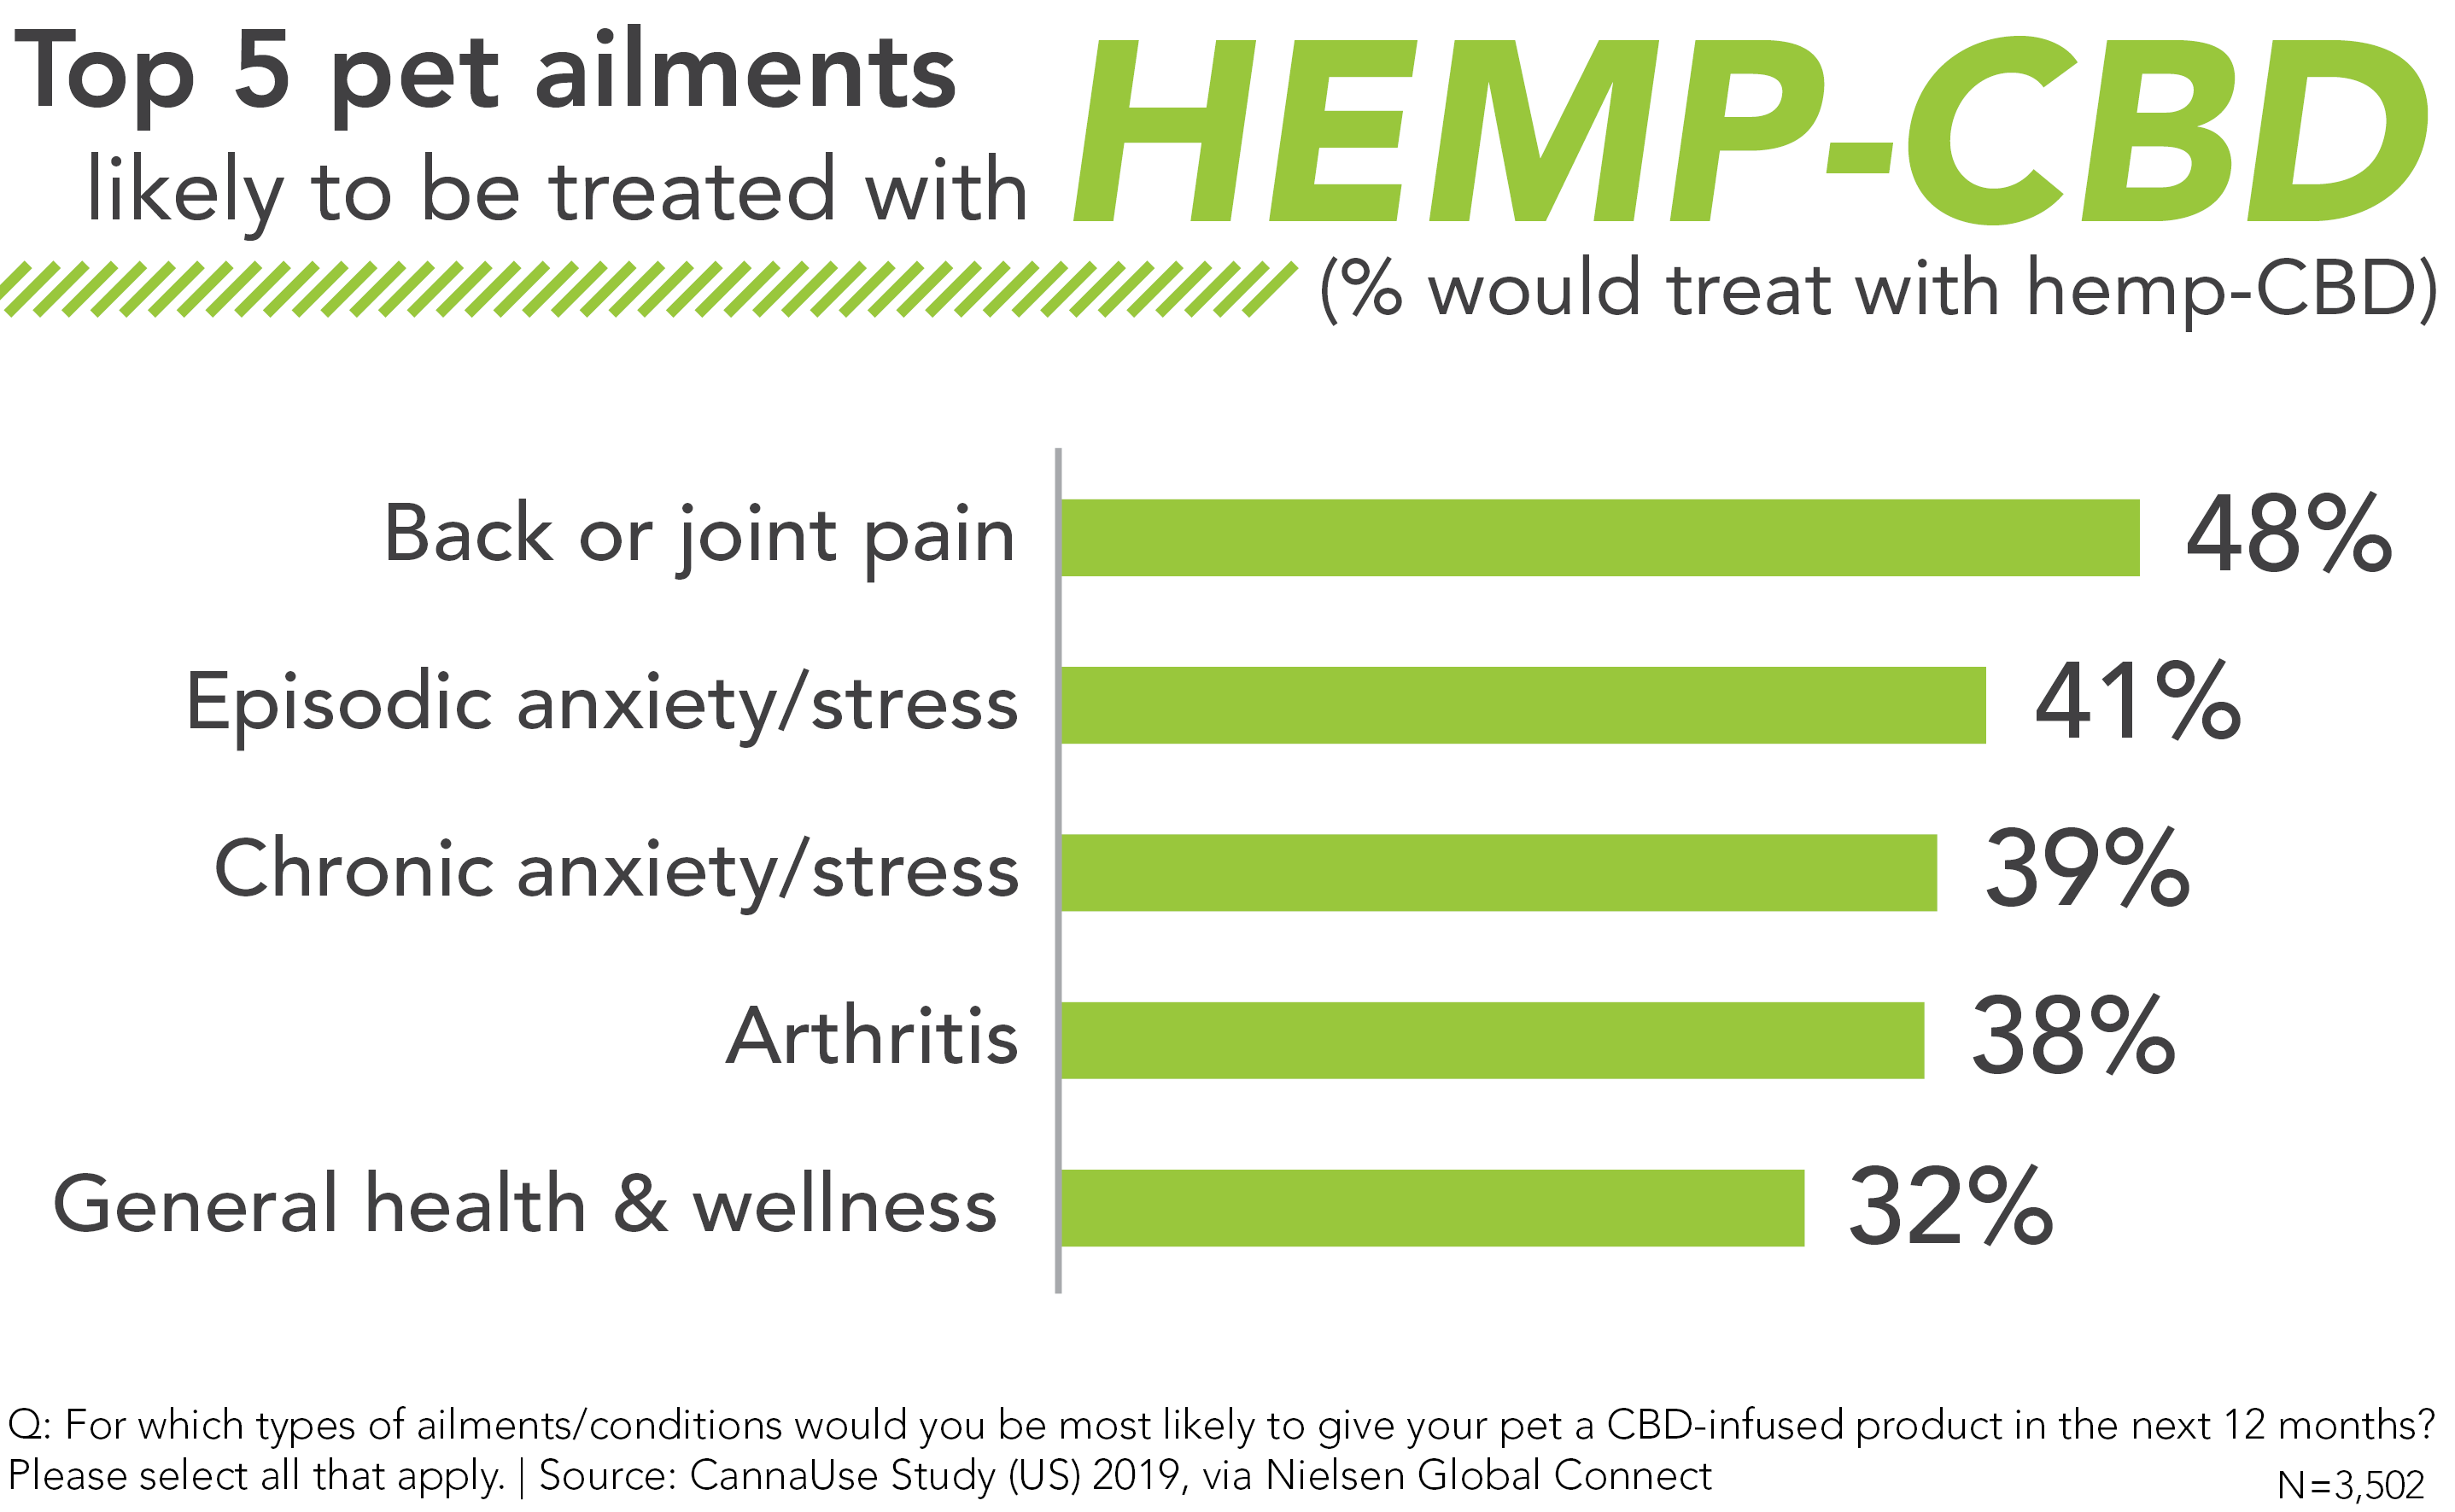 Treating pet ailments with Hemp-CBD